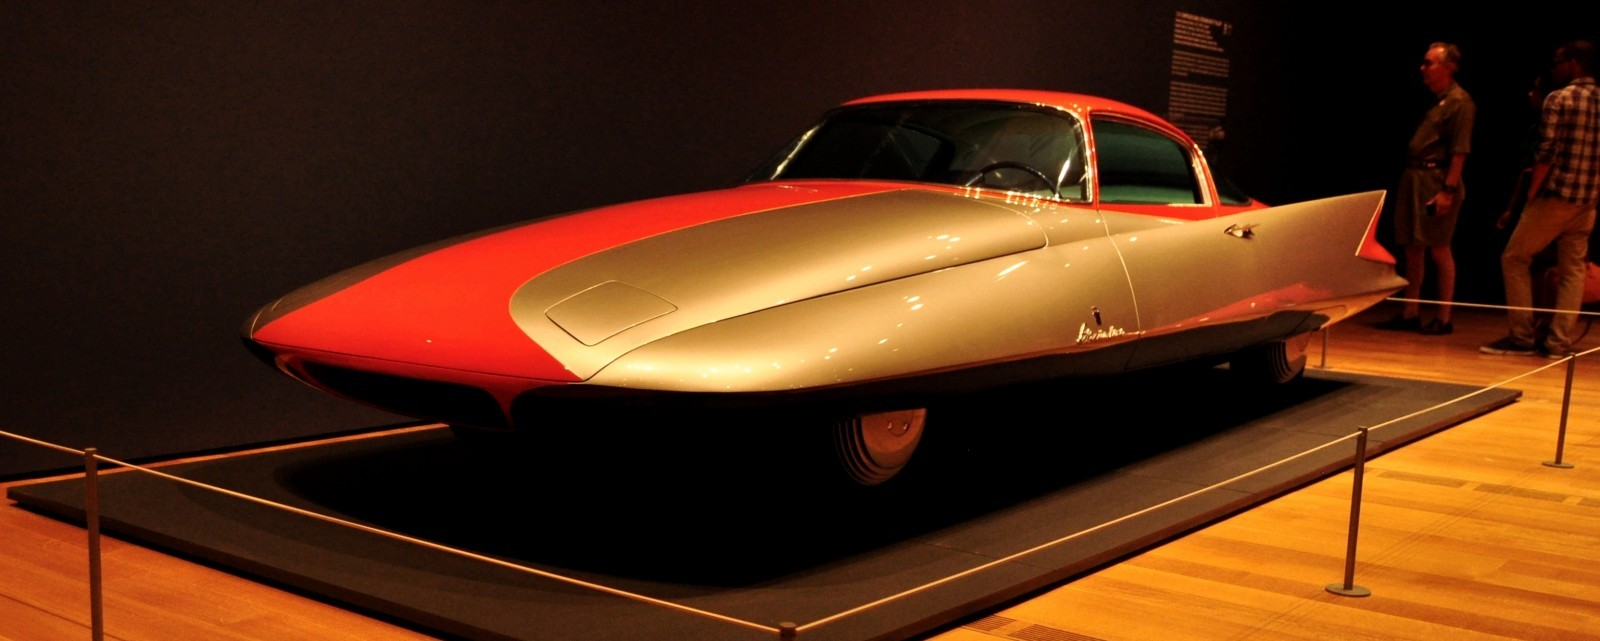 Atlanta Dream Cars - 1955 Chrysler Streamline X Ghilda by GHIA is Turbine Car Ideal 14